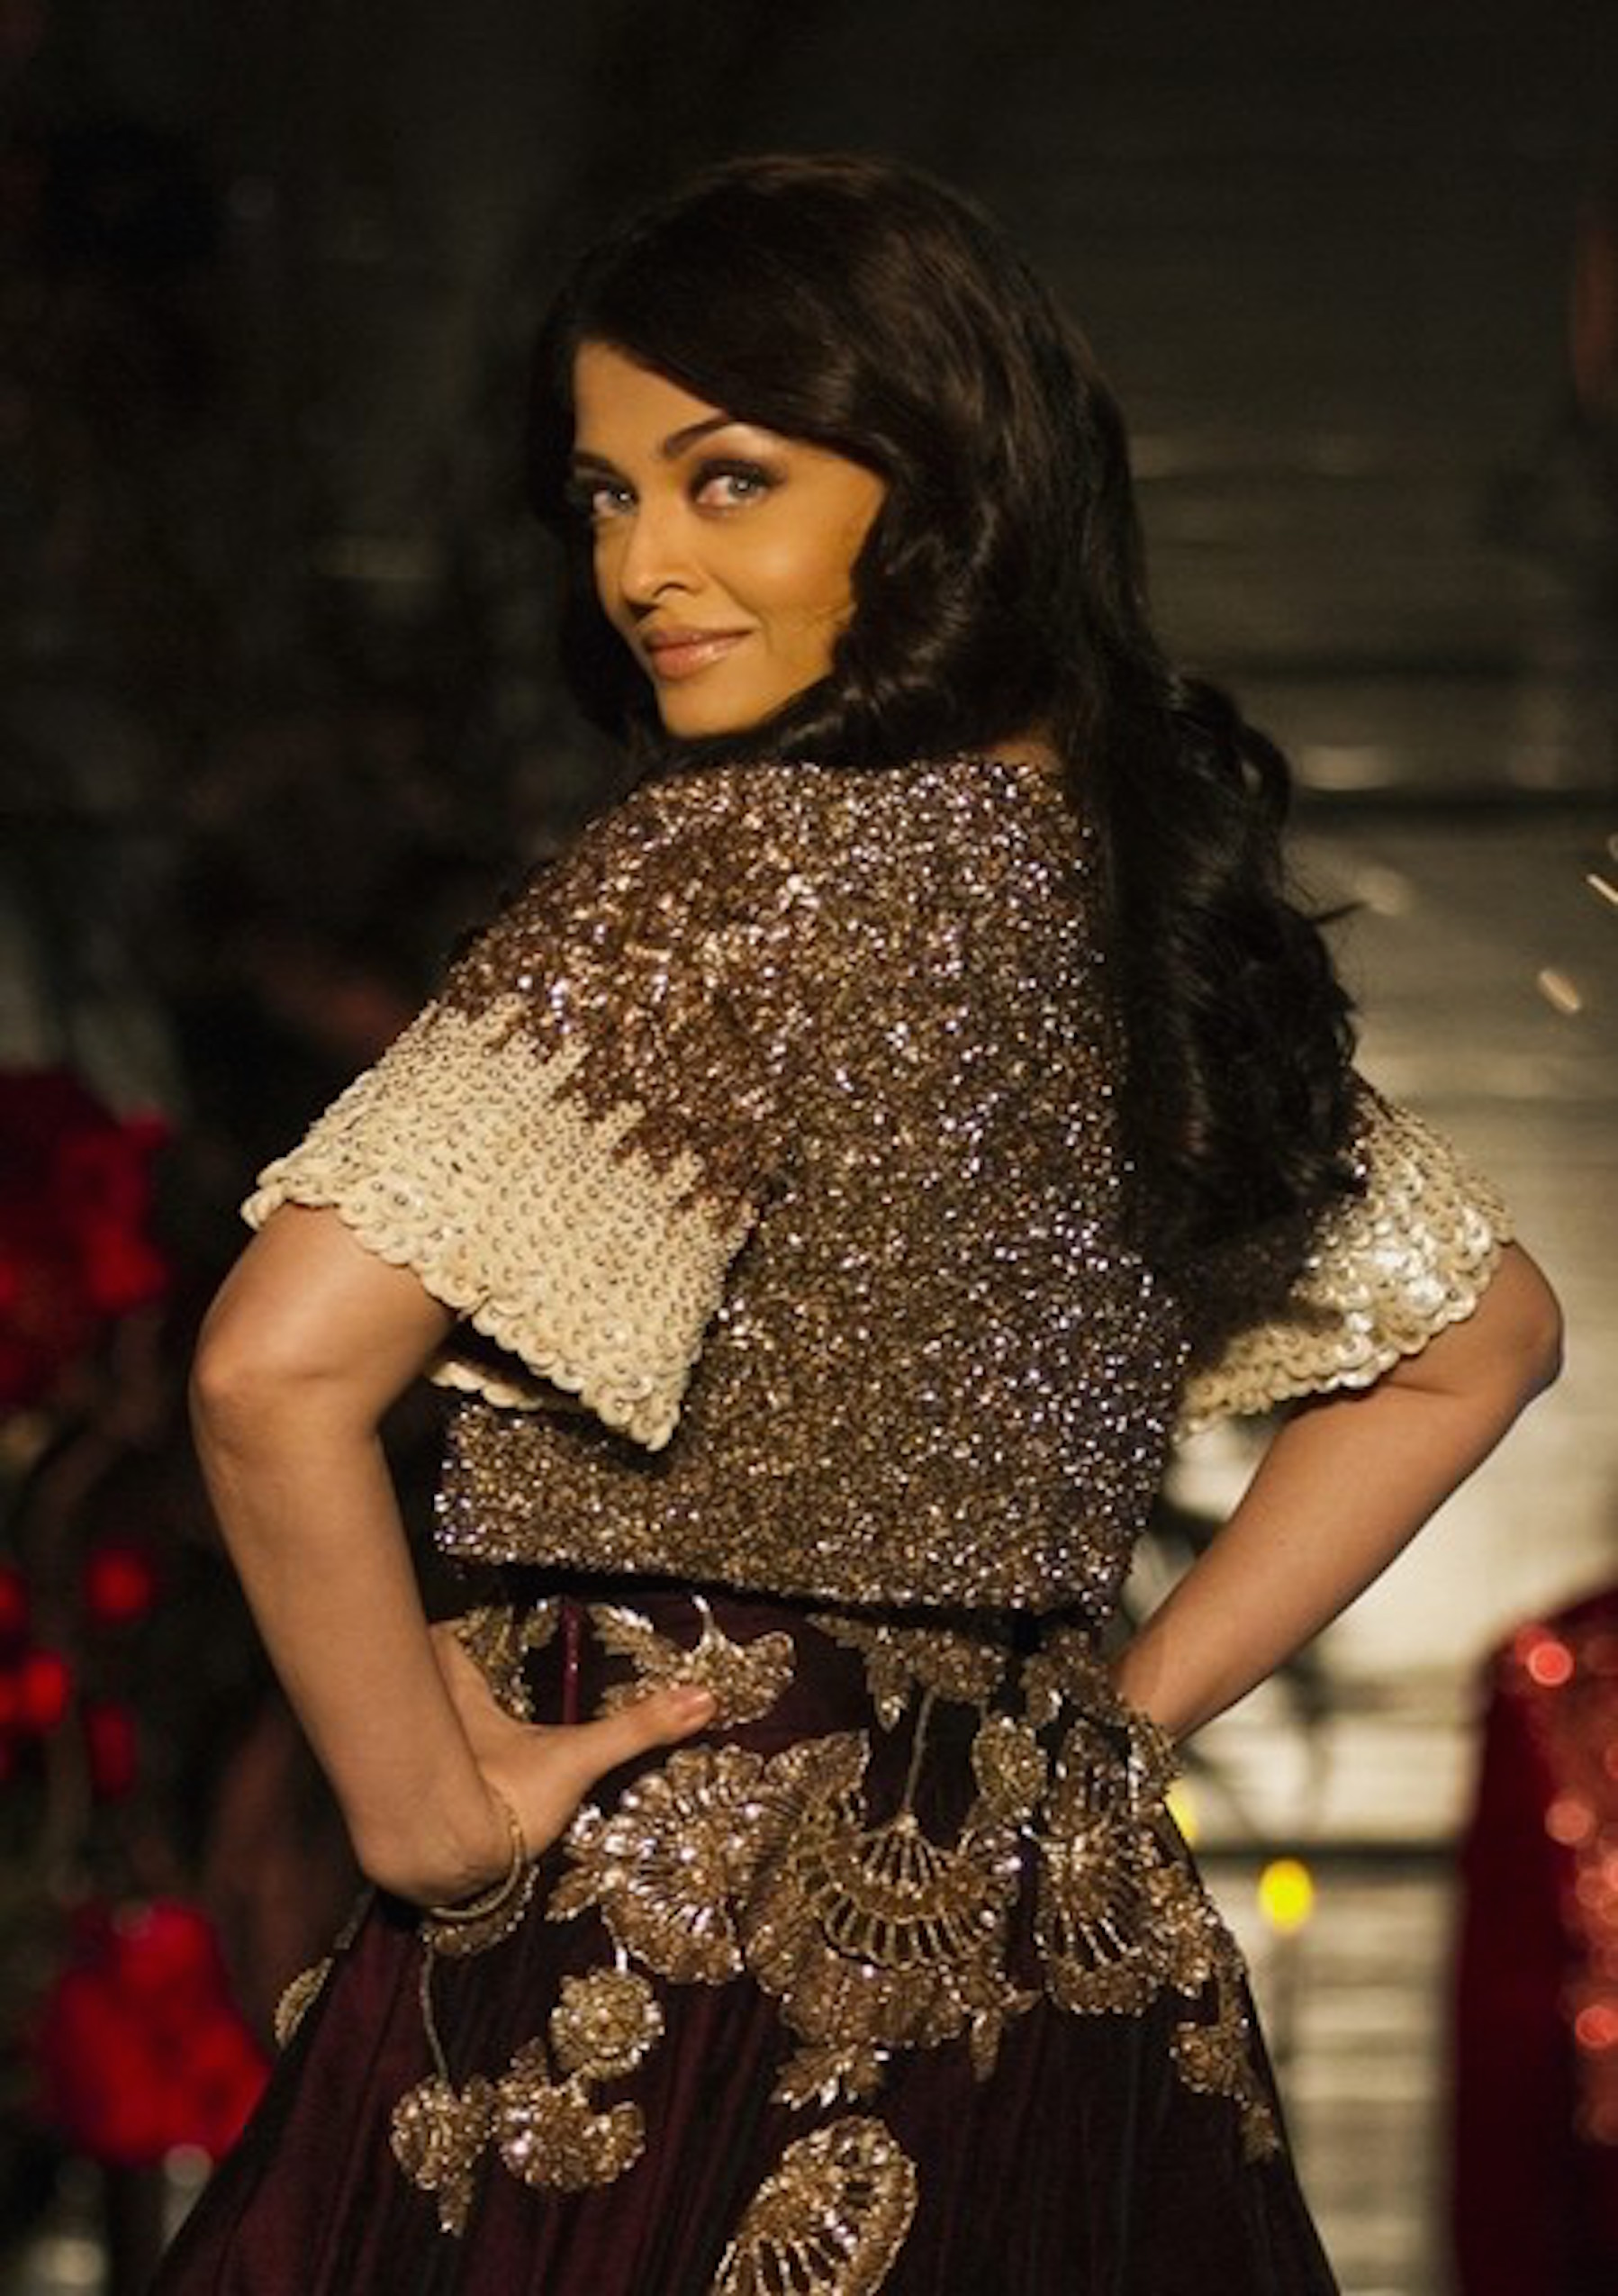 Aishwarya-Rai-AICW15-2-The-Maharani-Diaries